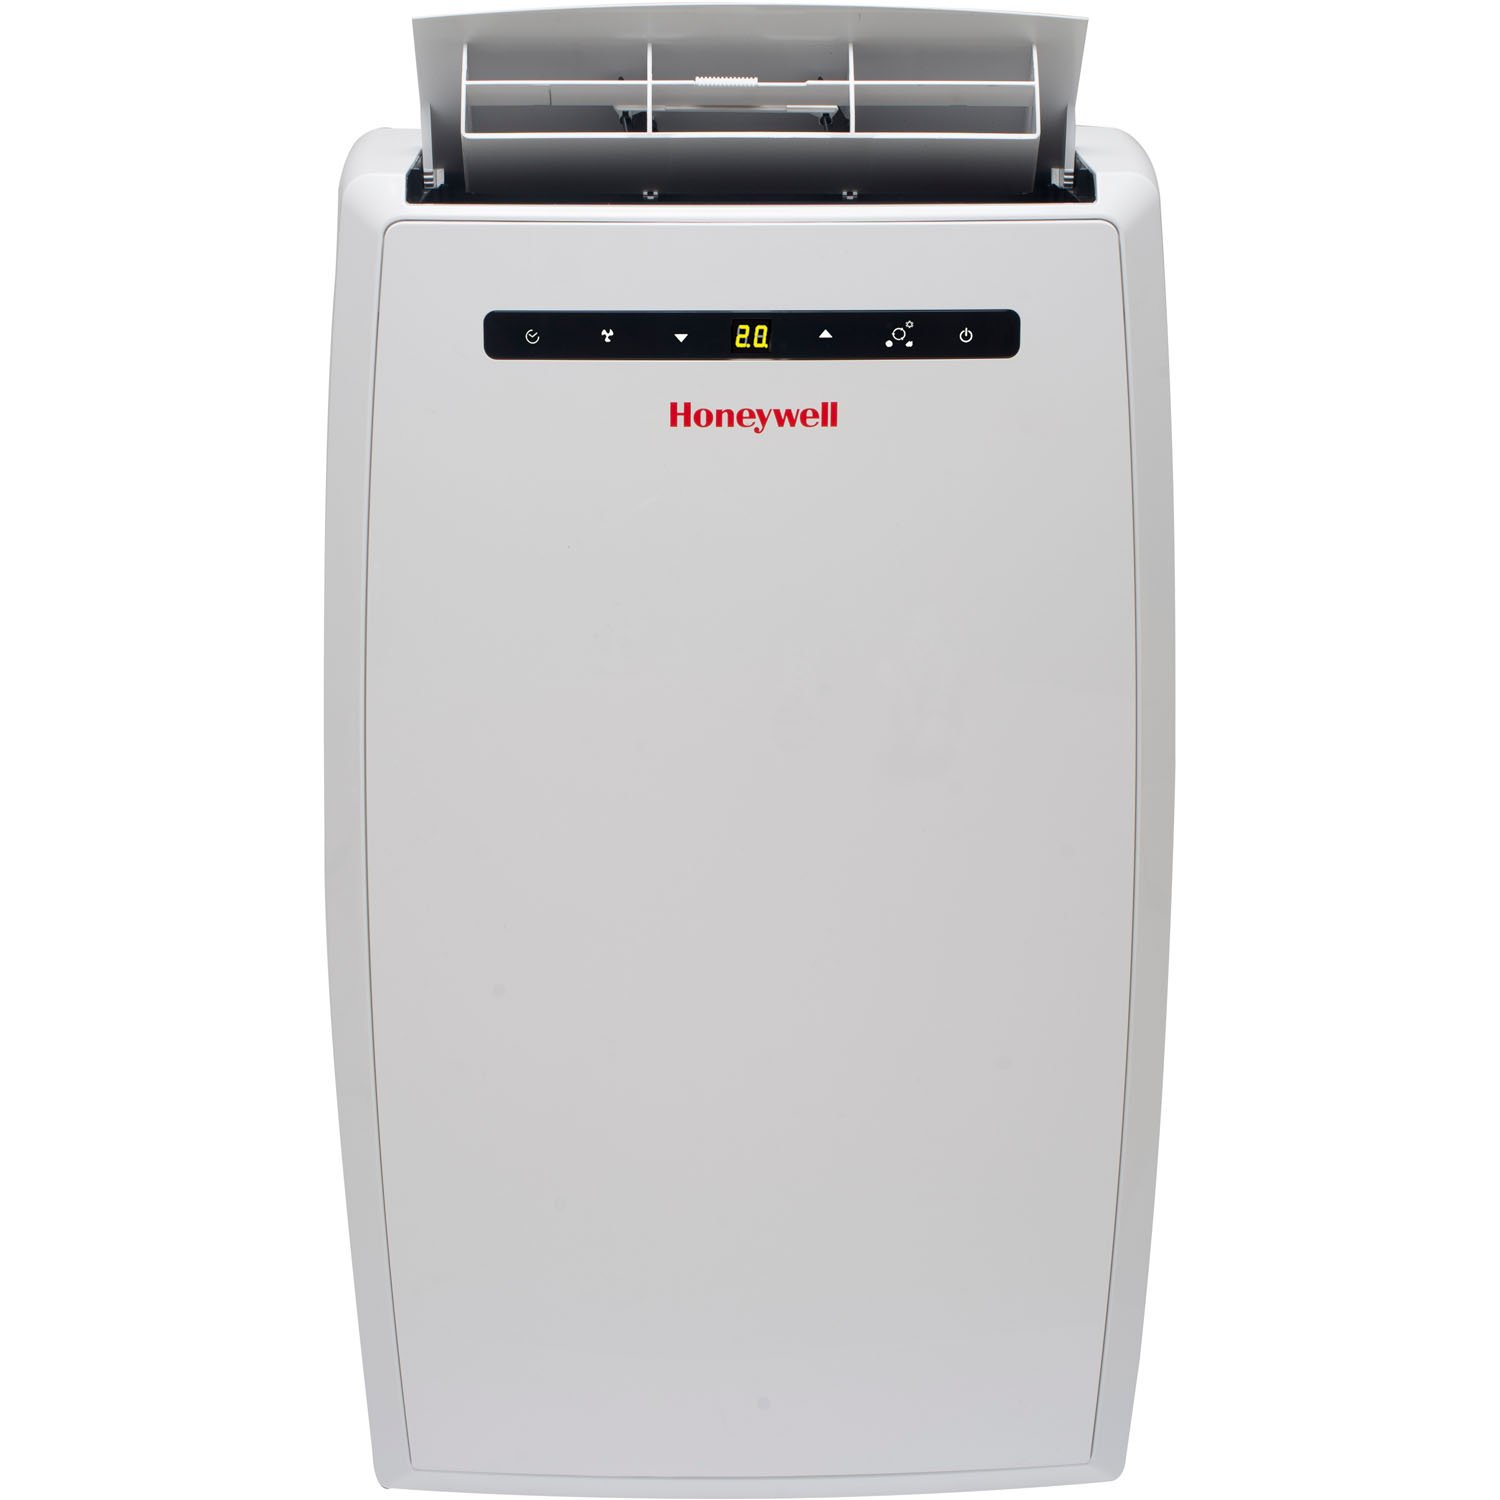 air conditioning portable. amazon.com: honeywell mn10cesww mn series 10,000 btu portable air conditioner with dehumidifier \u0026 fan in white: home kitchen conditioning n